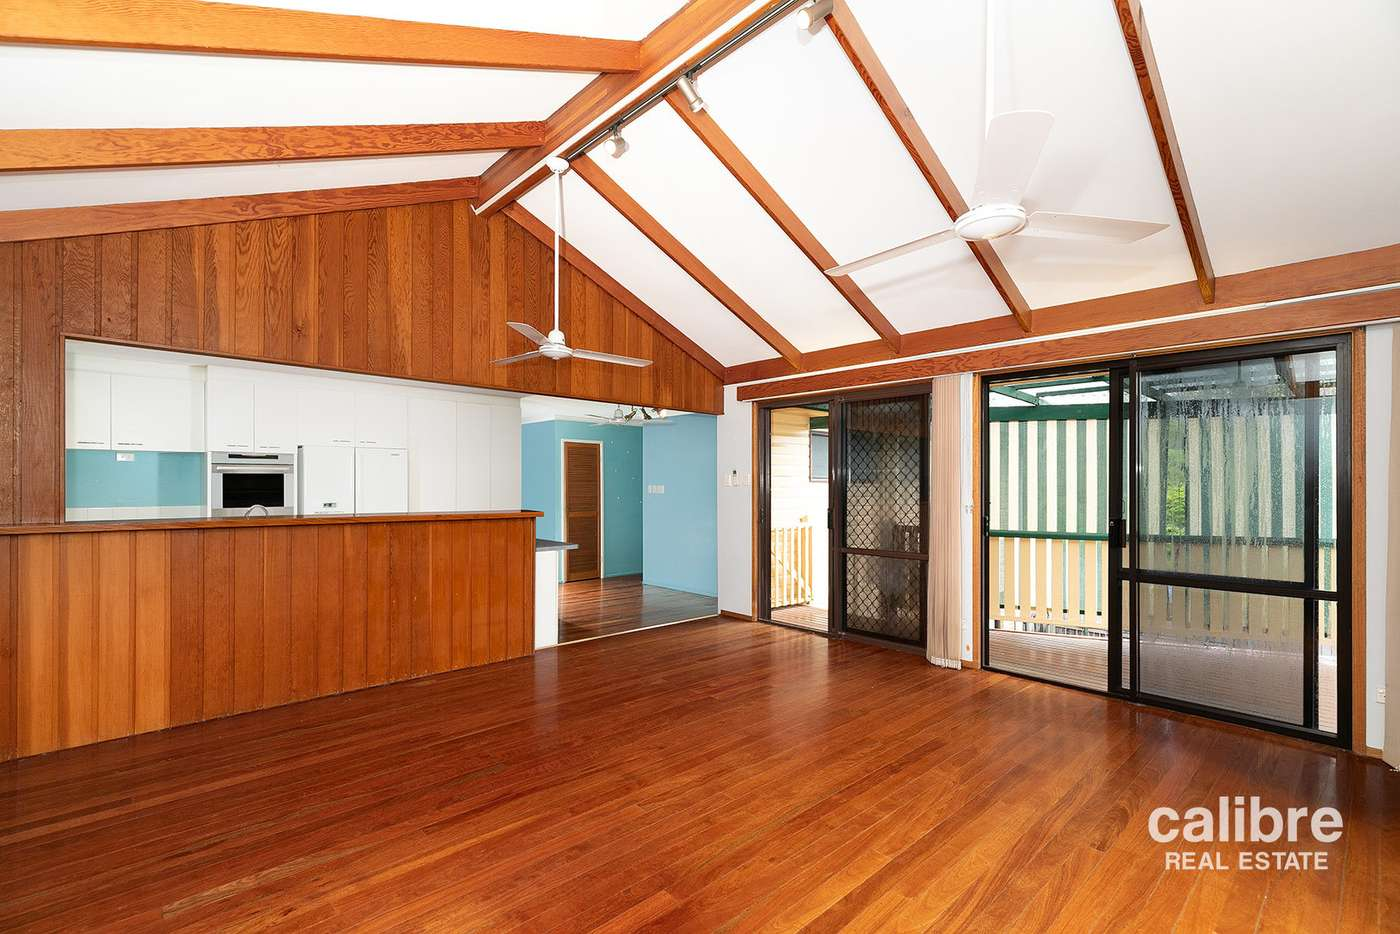 Sixth view of Homely house listing, 41 Teroma Street, The Gap QLD 4061